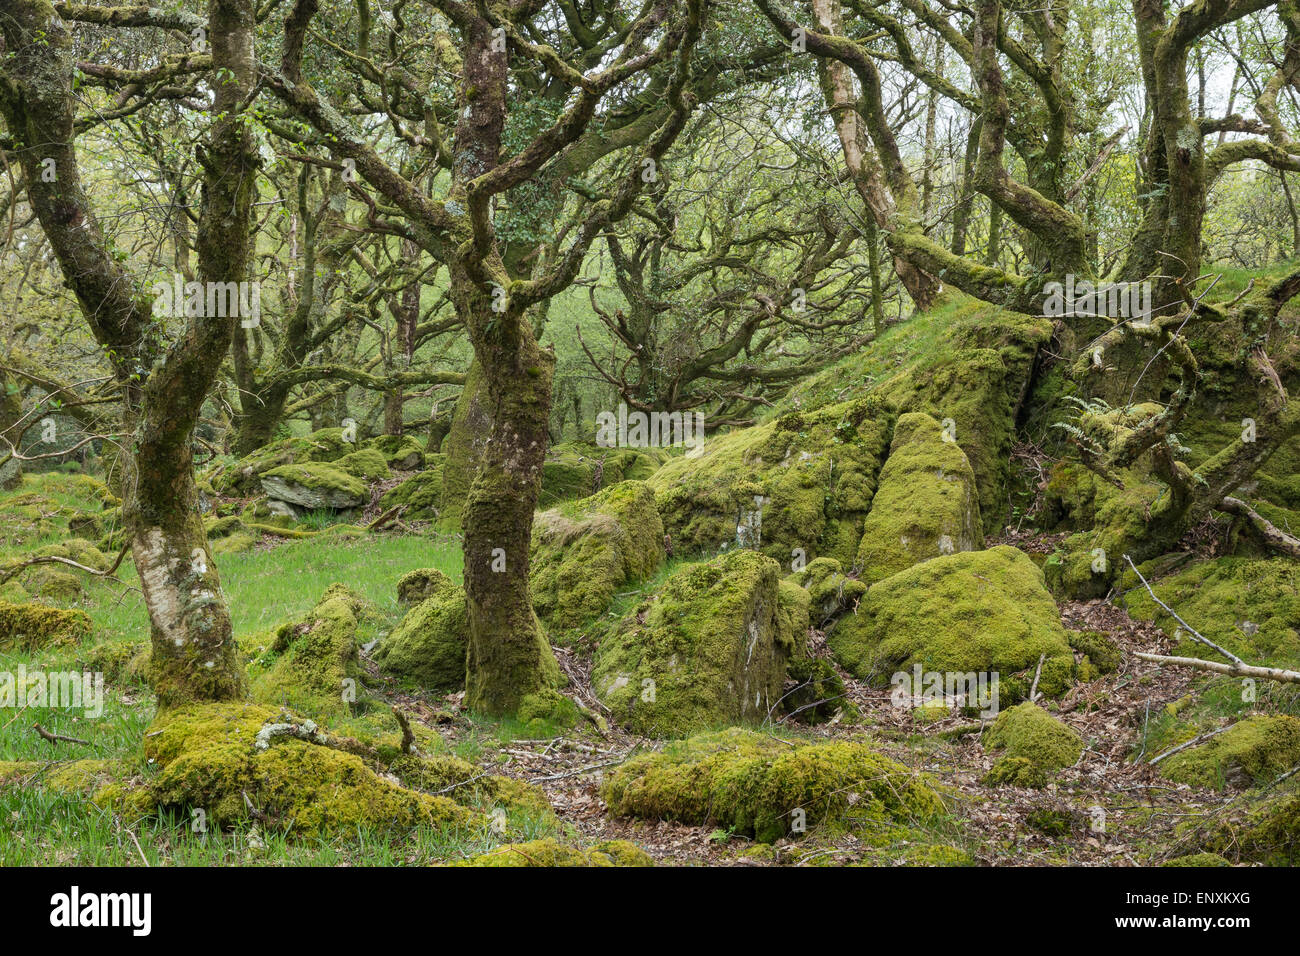 Ty Canol Ancient Oak woodland in Pembrokeshire, Wales - Stock Image